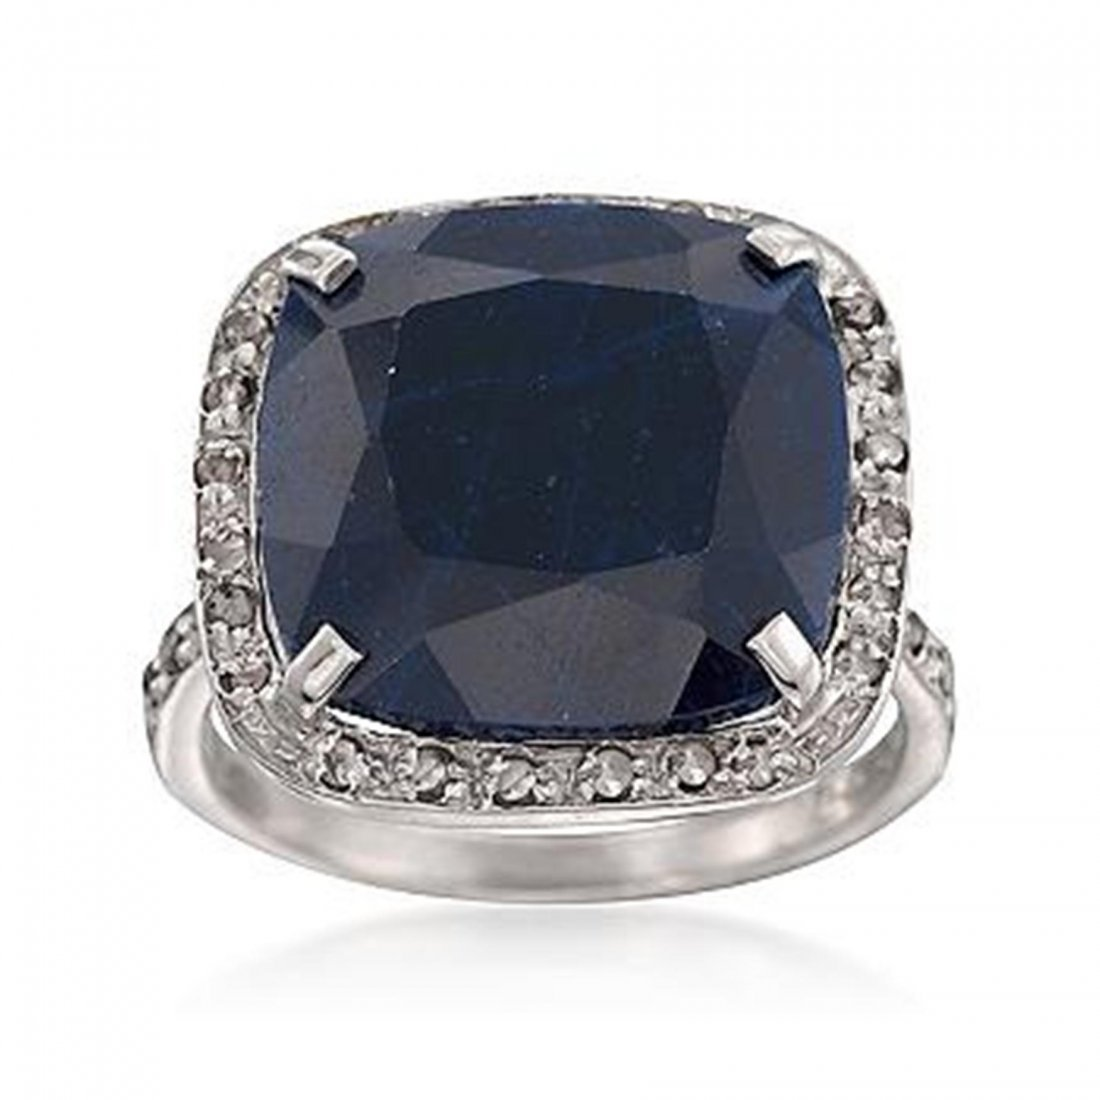 11.95 Carat Sapphire and .24 ct. t.w. Diamond Ring in S